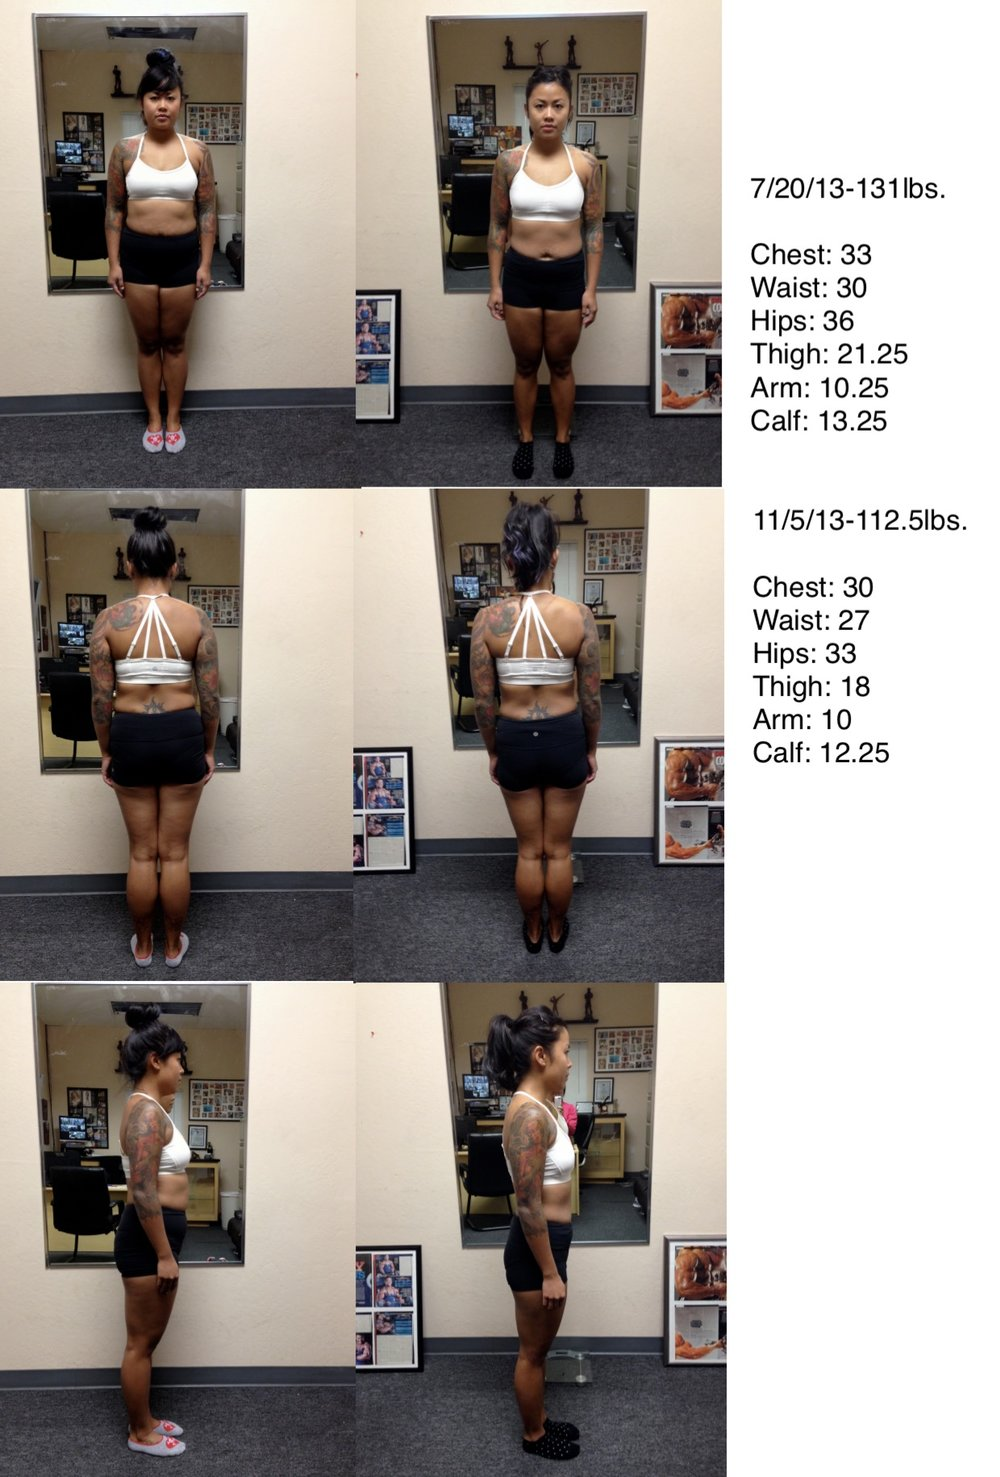 My first set of progress pictures after a 12 week transformation program